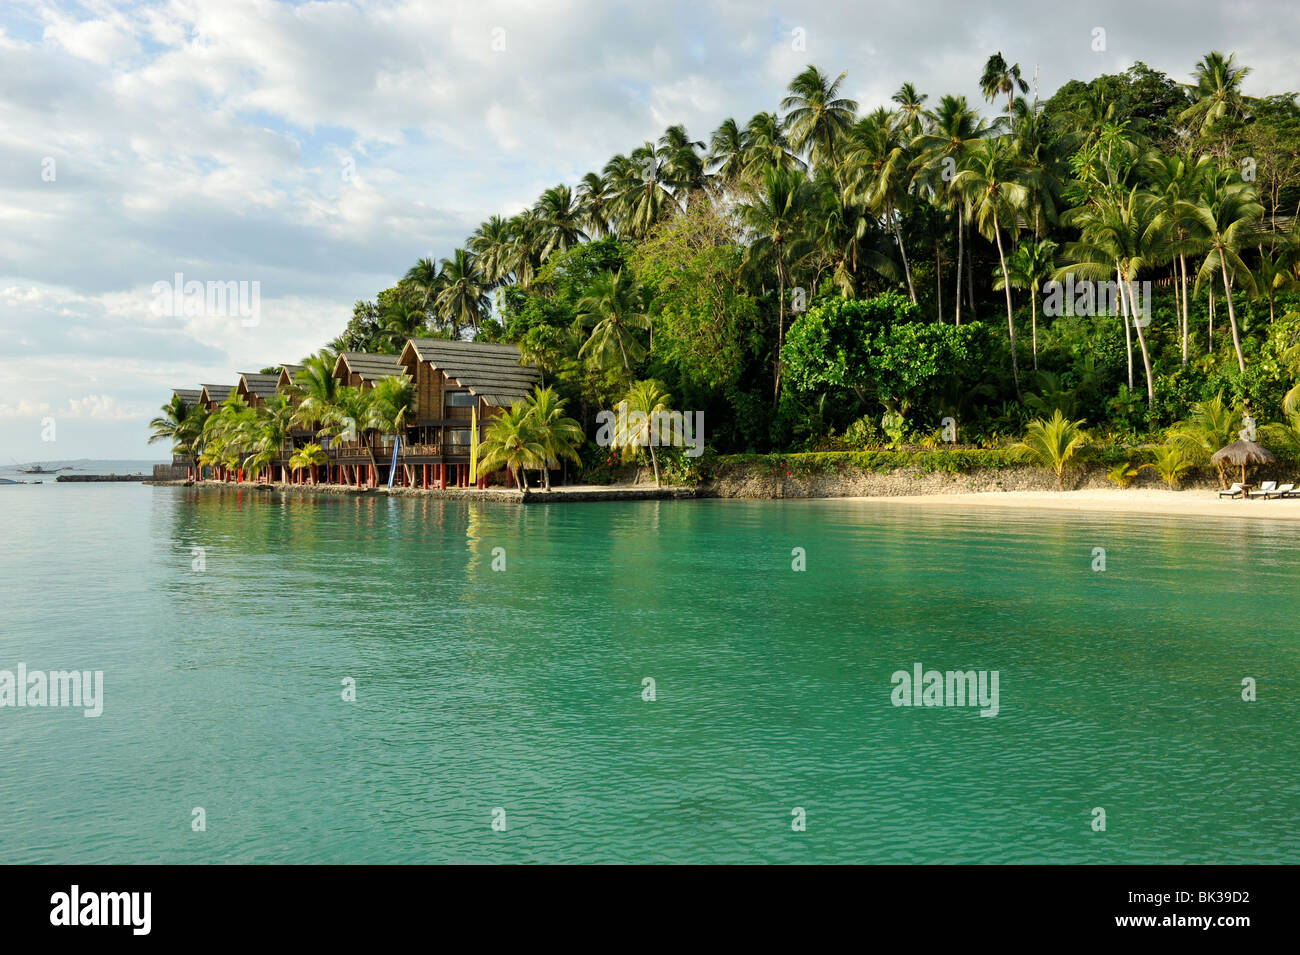 Pearl Farm Resort on Samar Island in Davao, Mindanao, Philippines, Southeast Asia, Asia - Stock Image